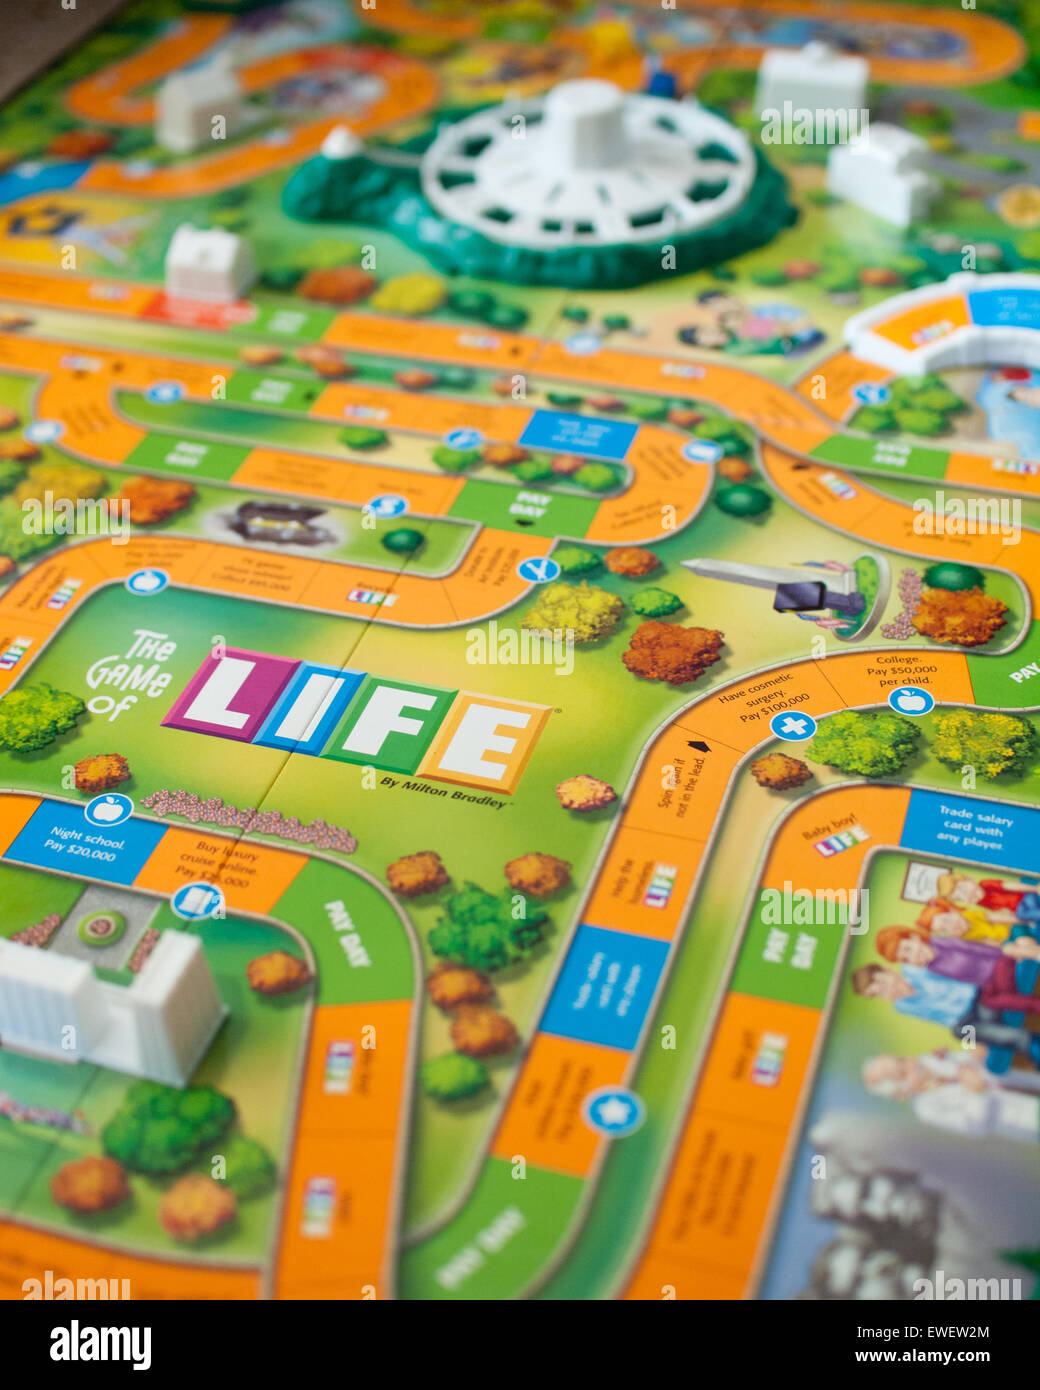 A view of The Game of Life (also known as LIFE), a board game originally created in 1860 by MIlton Bradley. - Stock Image